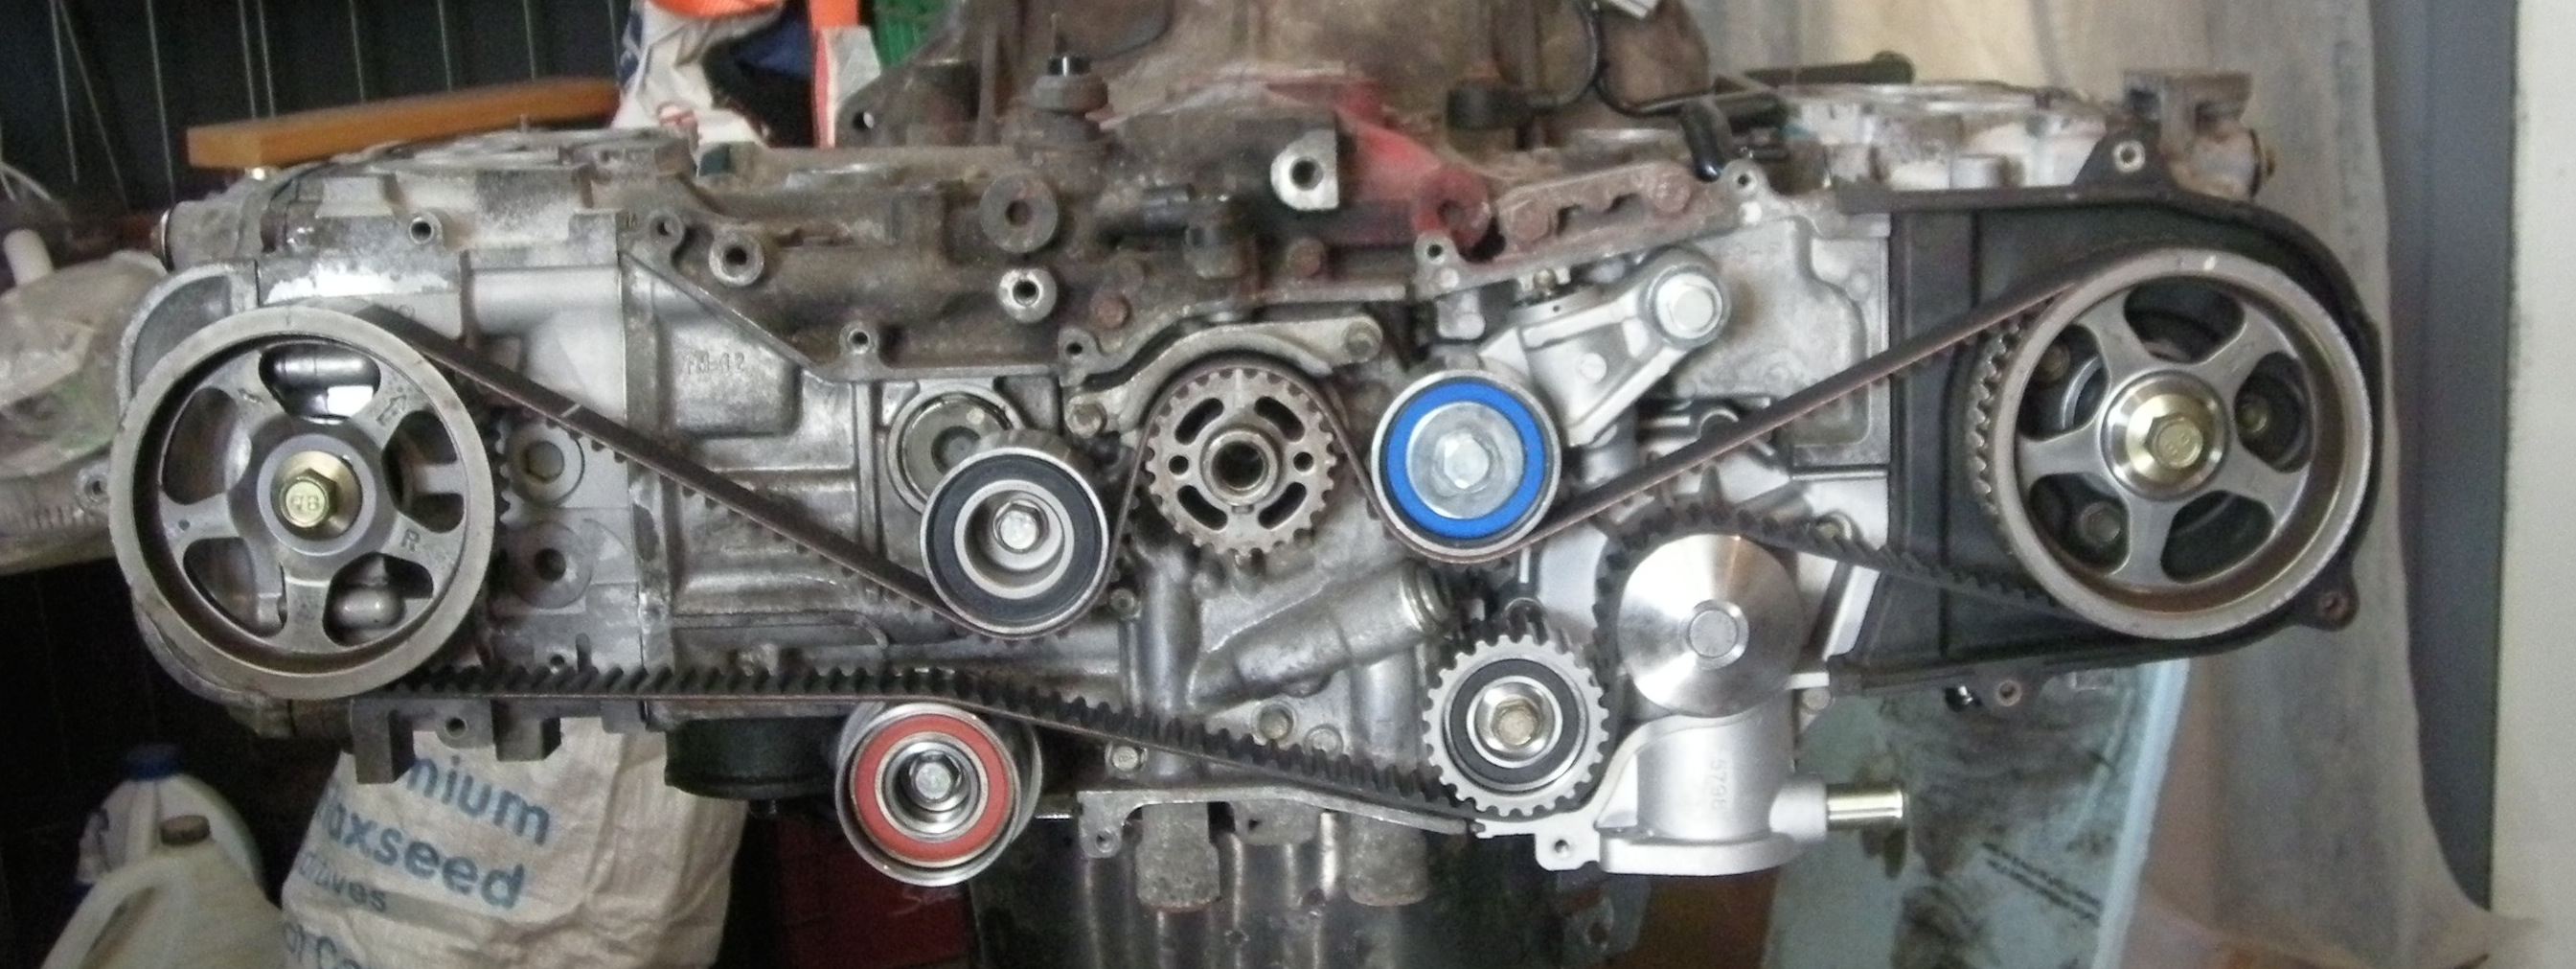 small resolution of subaru forester timing belt diagram besides 2006 subaru legacy engine wiring diagram host